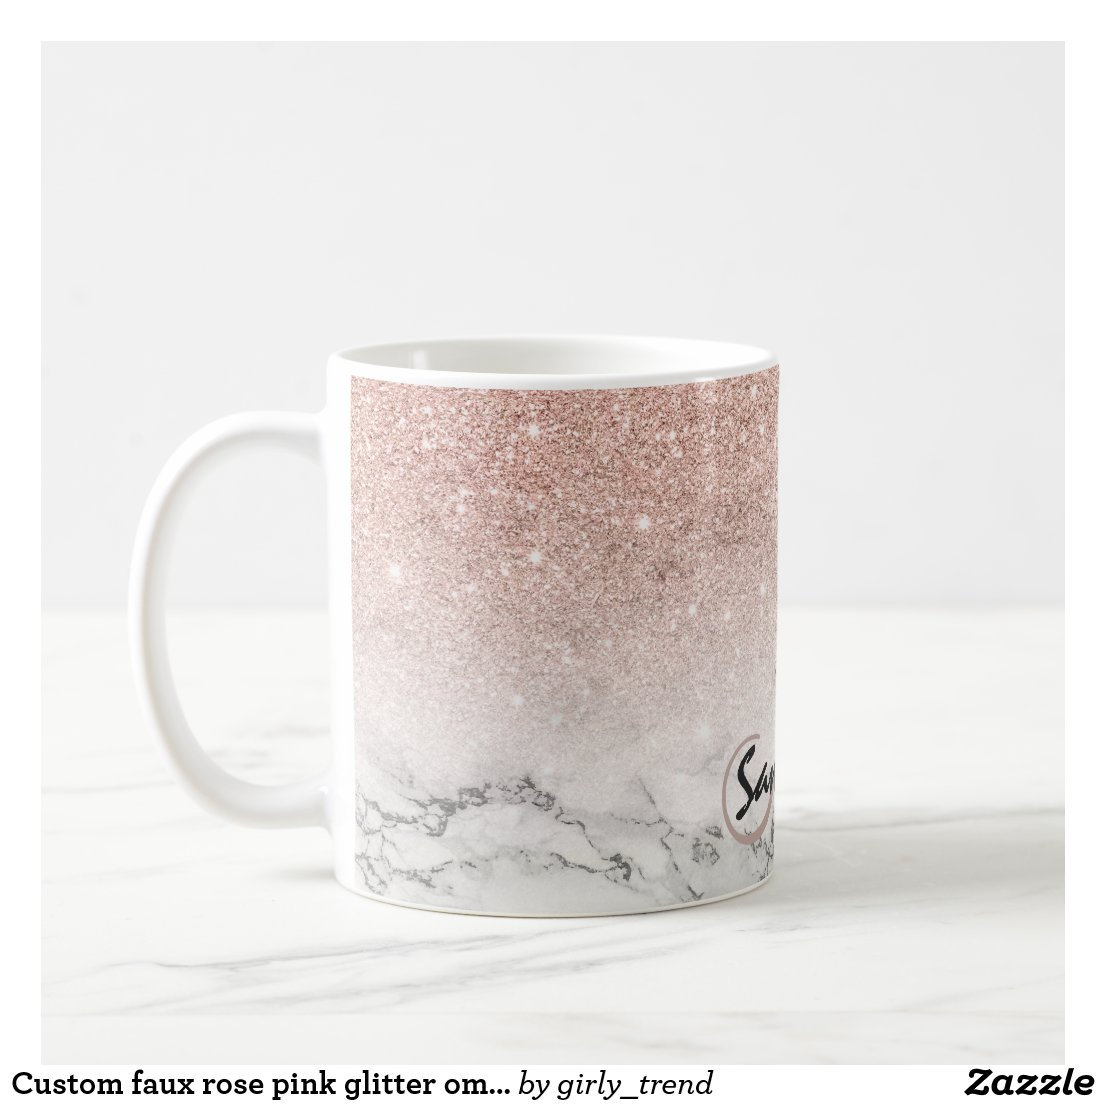 Custom faux rose pink glitter ombre white marble